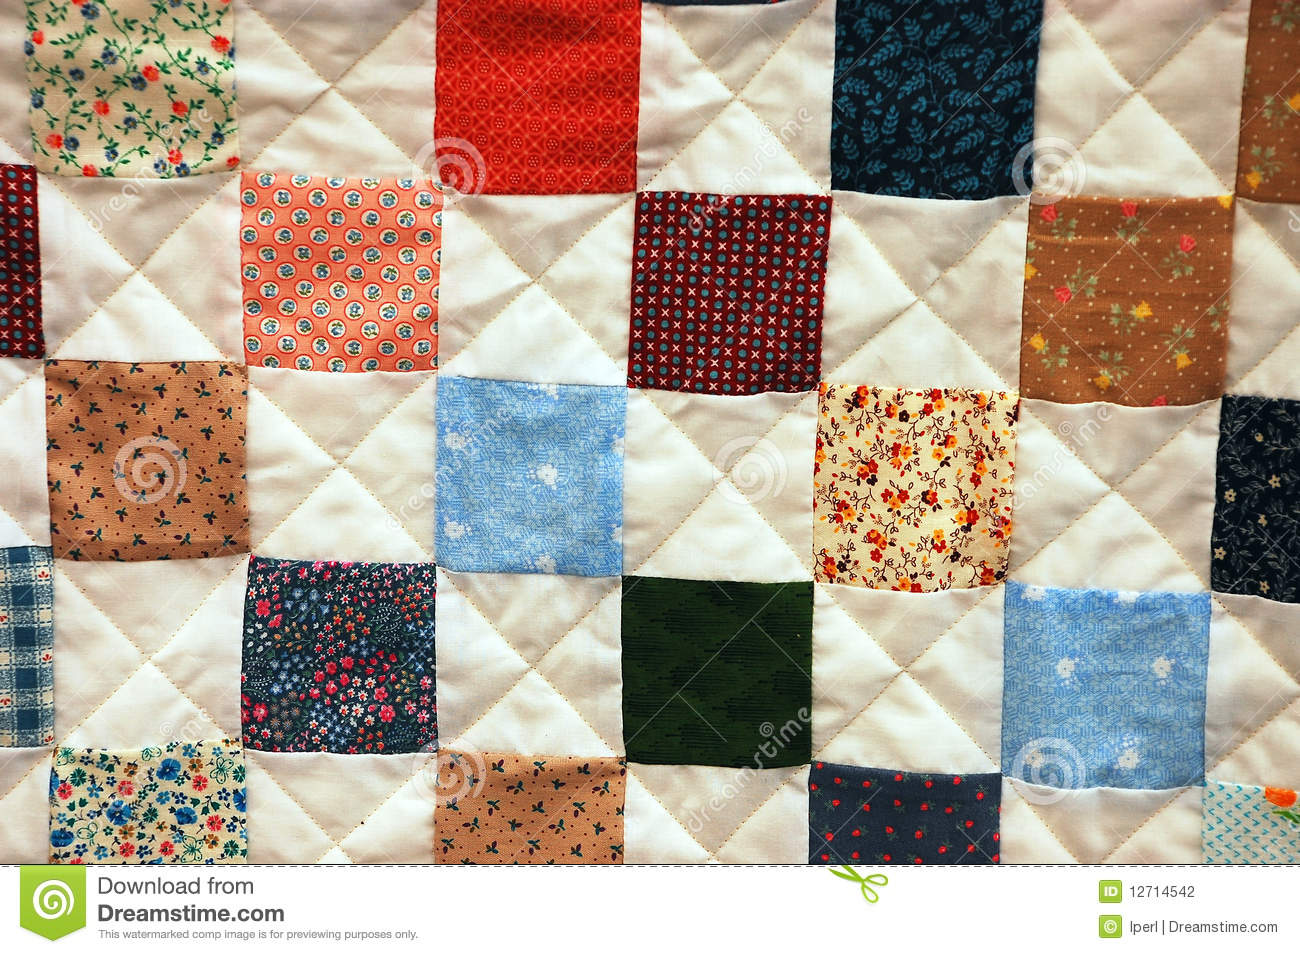 Similar Galleries: Patchwork Quilt Square , Patchwork Quilt Patterns ...